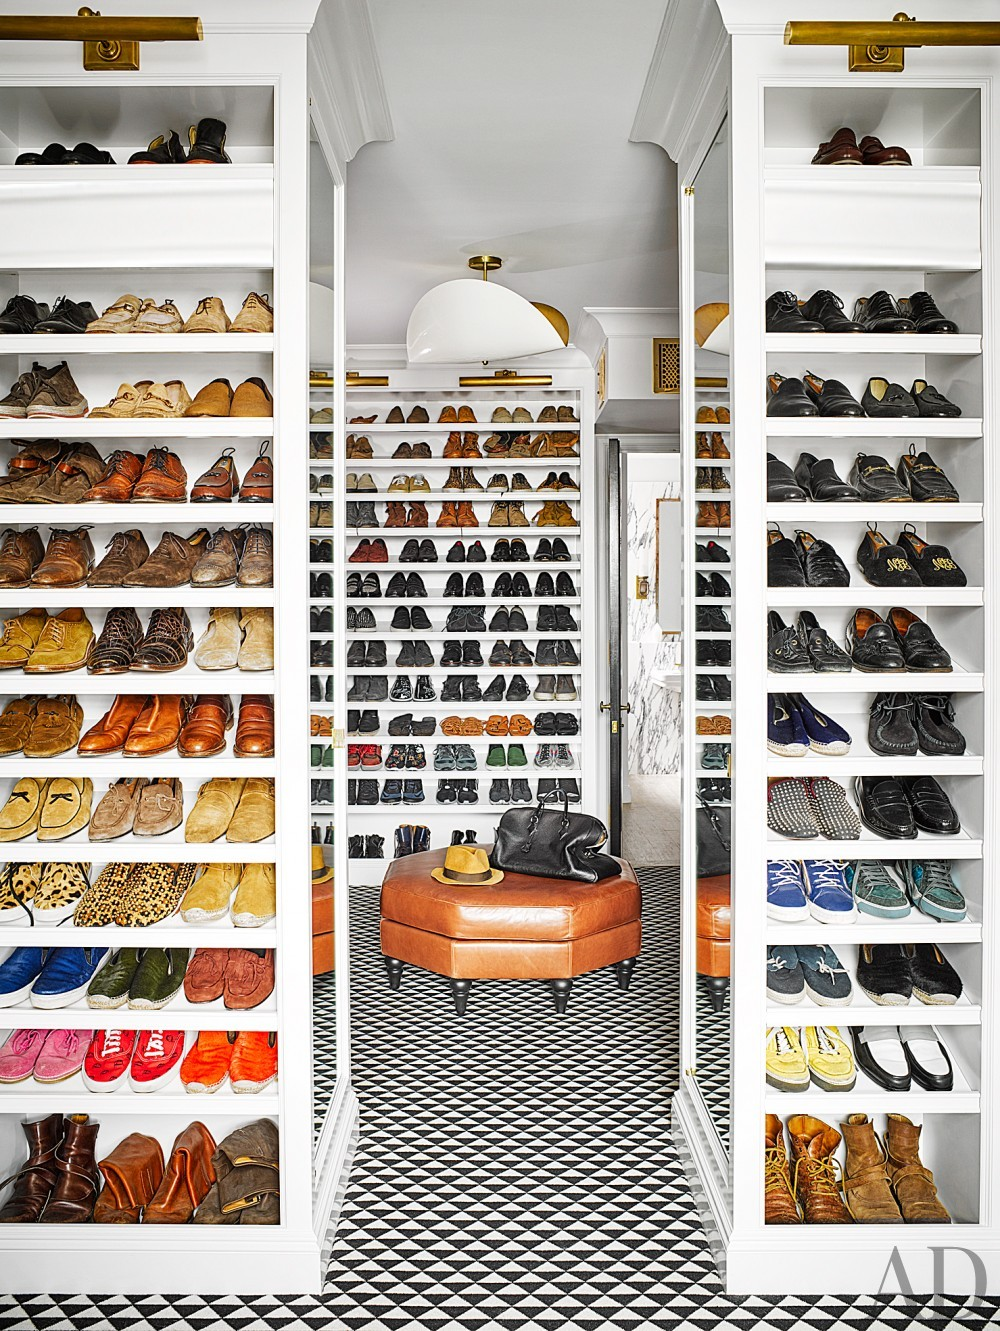 Dressing Room/Closet by Nate Berkus and Jeremiah Brent in New York, NY